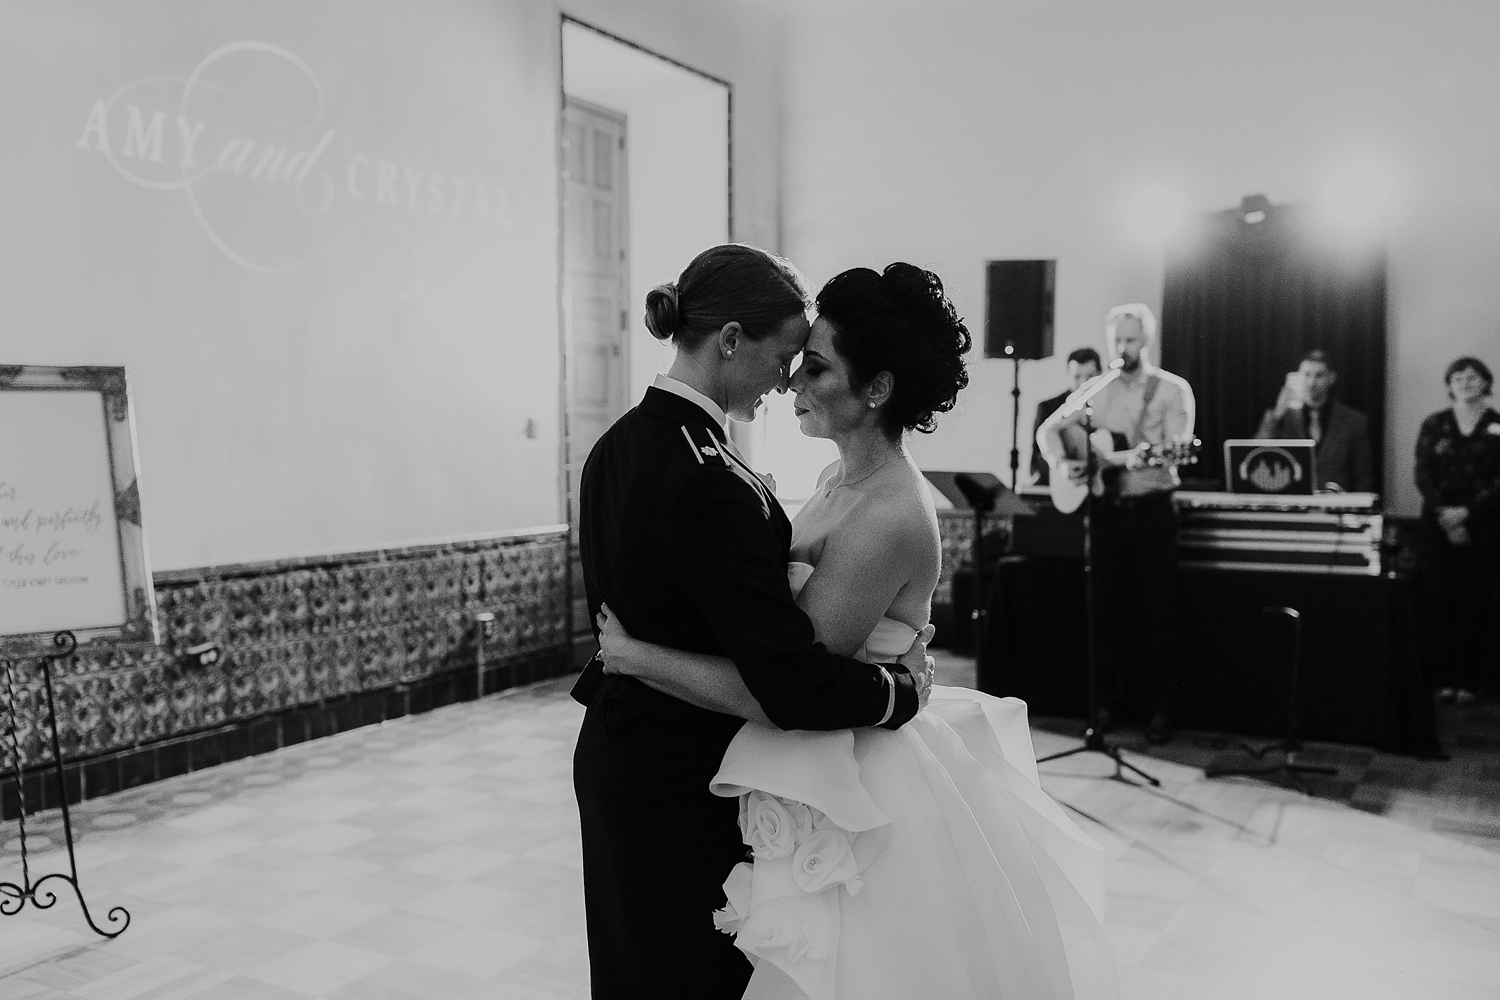 Alicia+lucia+photography+-+albuquerque+wedding+photographer+-+santa+fe+wedding+photography+-+new+mexico+wedding+photographer+-+los+poblanos+wedding+-+los+poblanos+fall+wedding+-+los+poblanos+october+wedding_0108.jpg